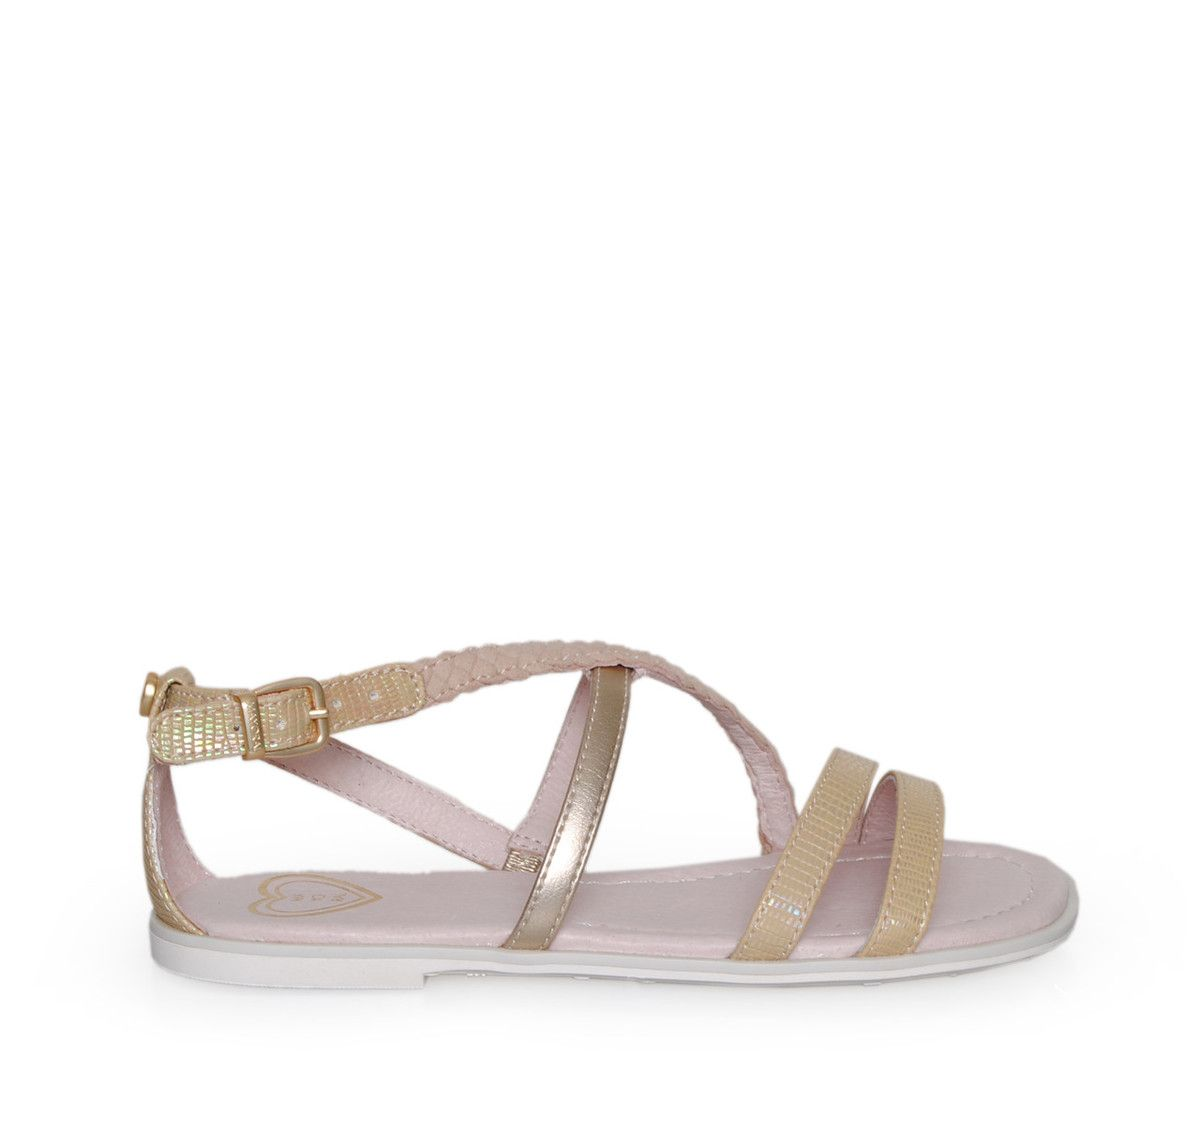 f2ea197a23 MAYORAL Sand Girly Sandals. Παιδικά μπεζ κοριτσίστικα πέδιλα ...